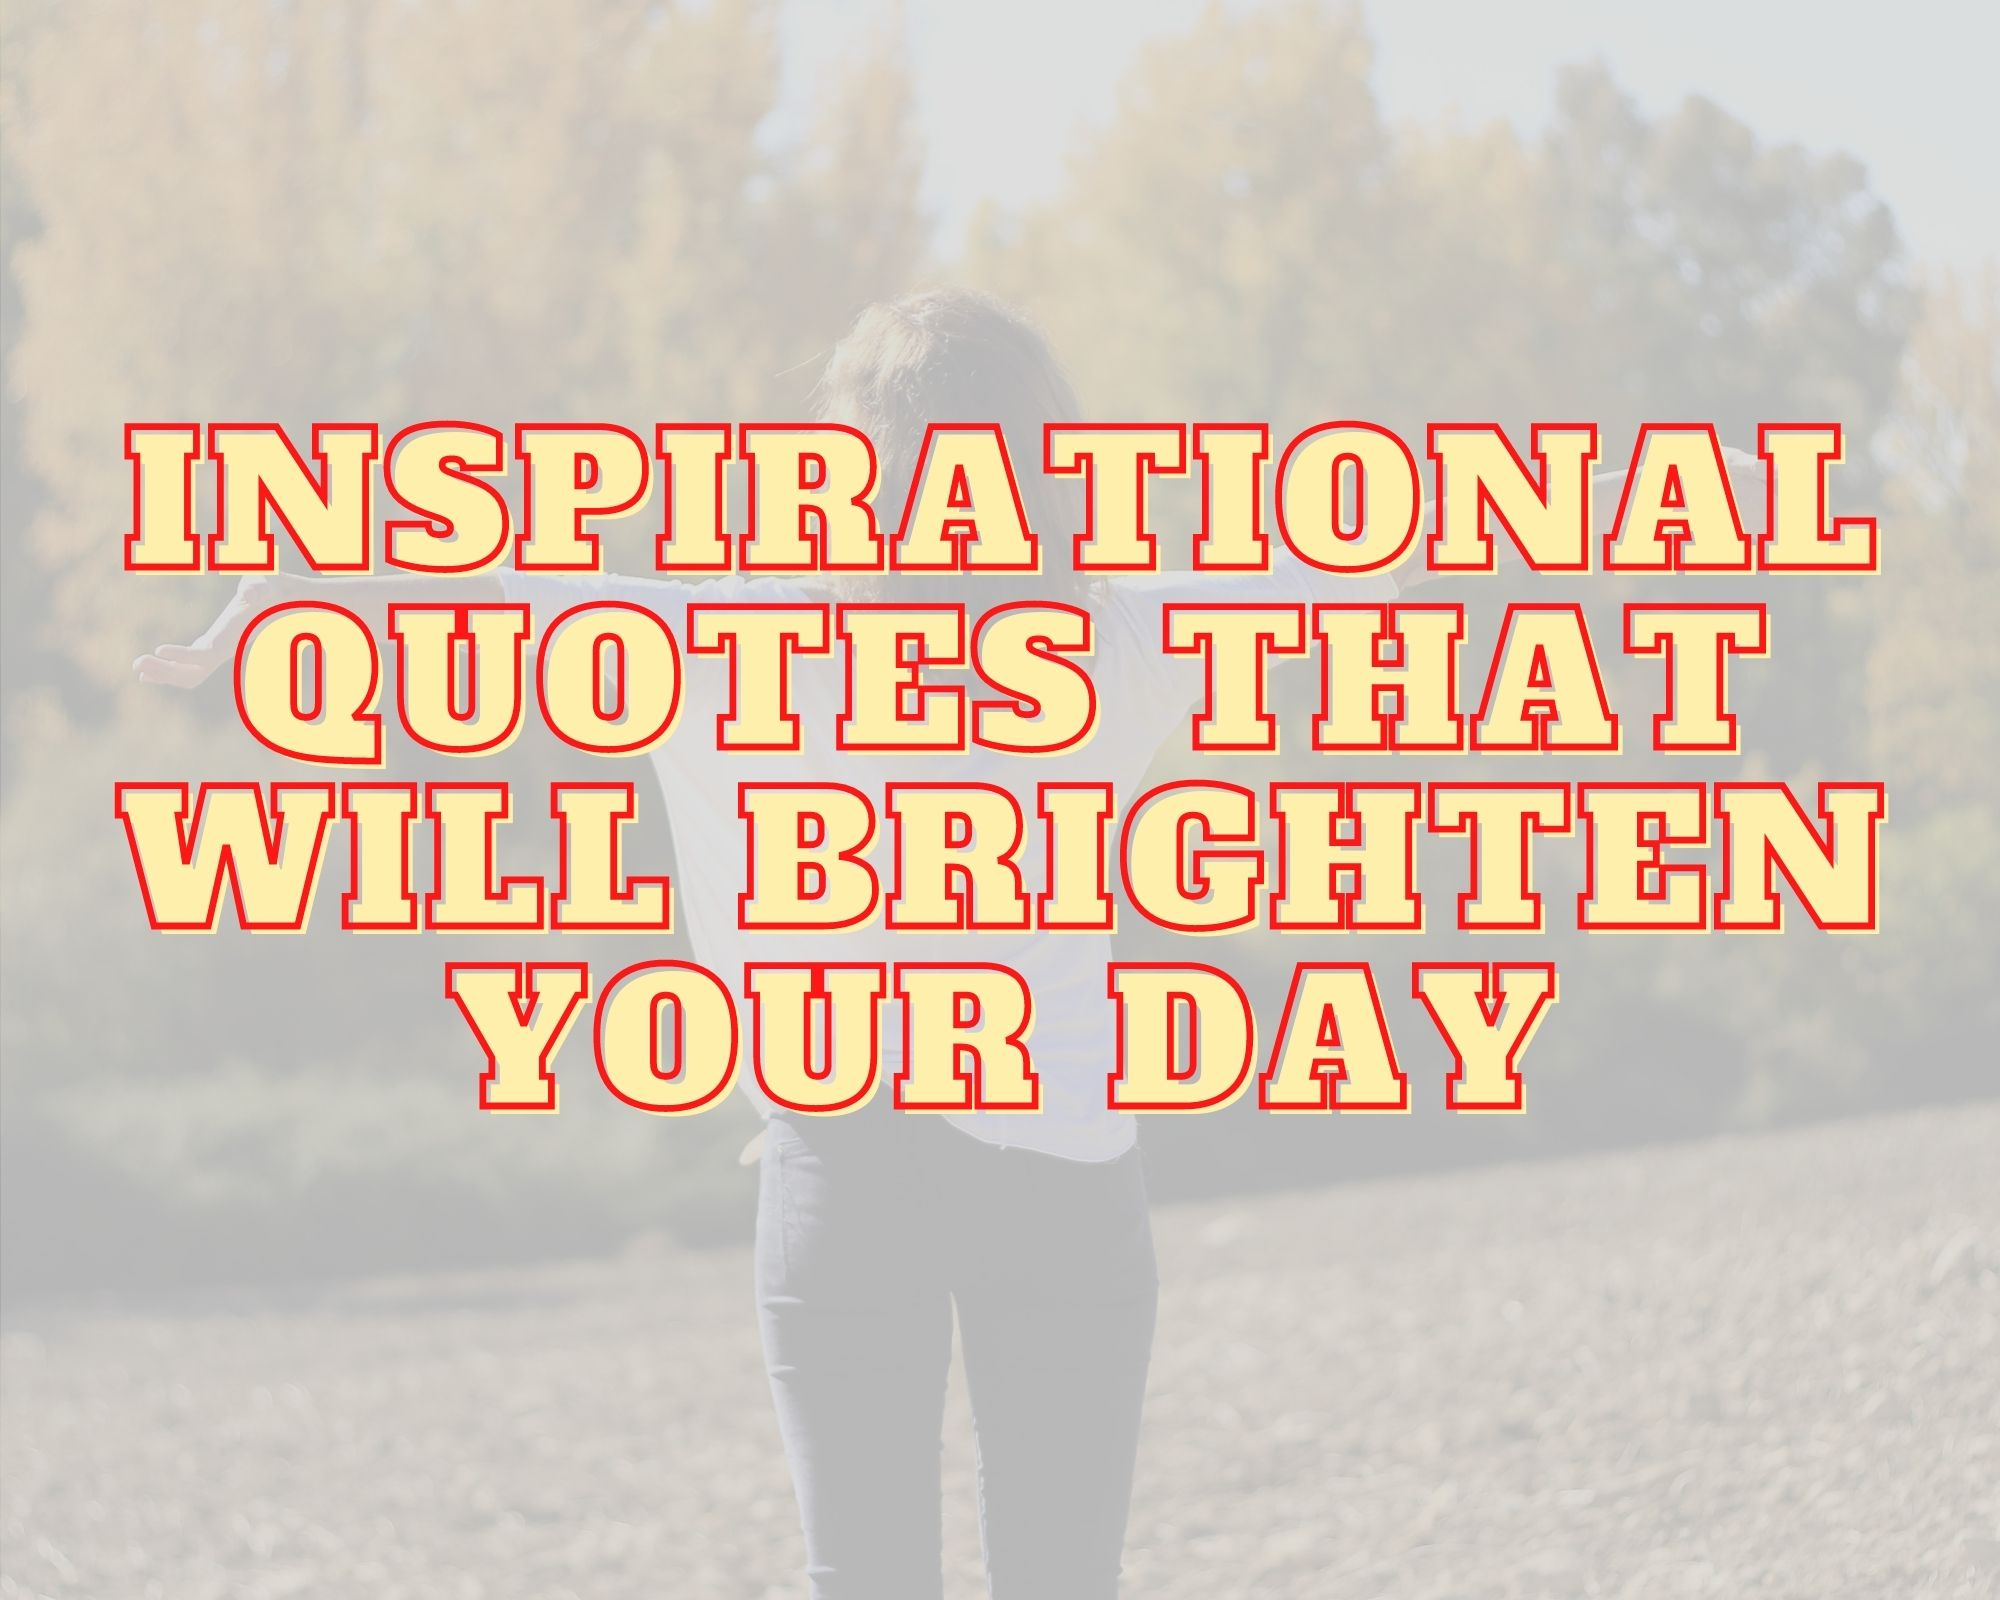 Inspirational Quotes That Will brighten Your Day